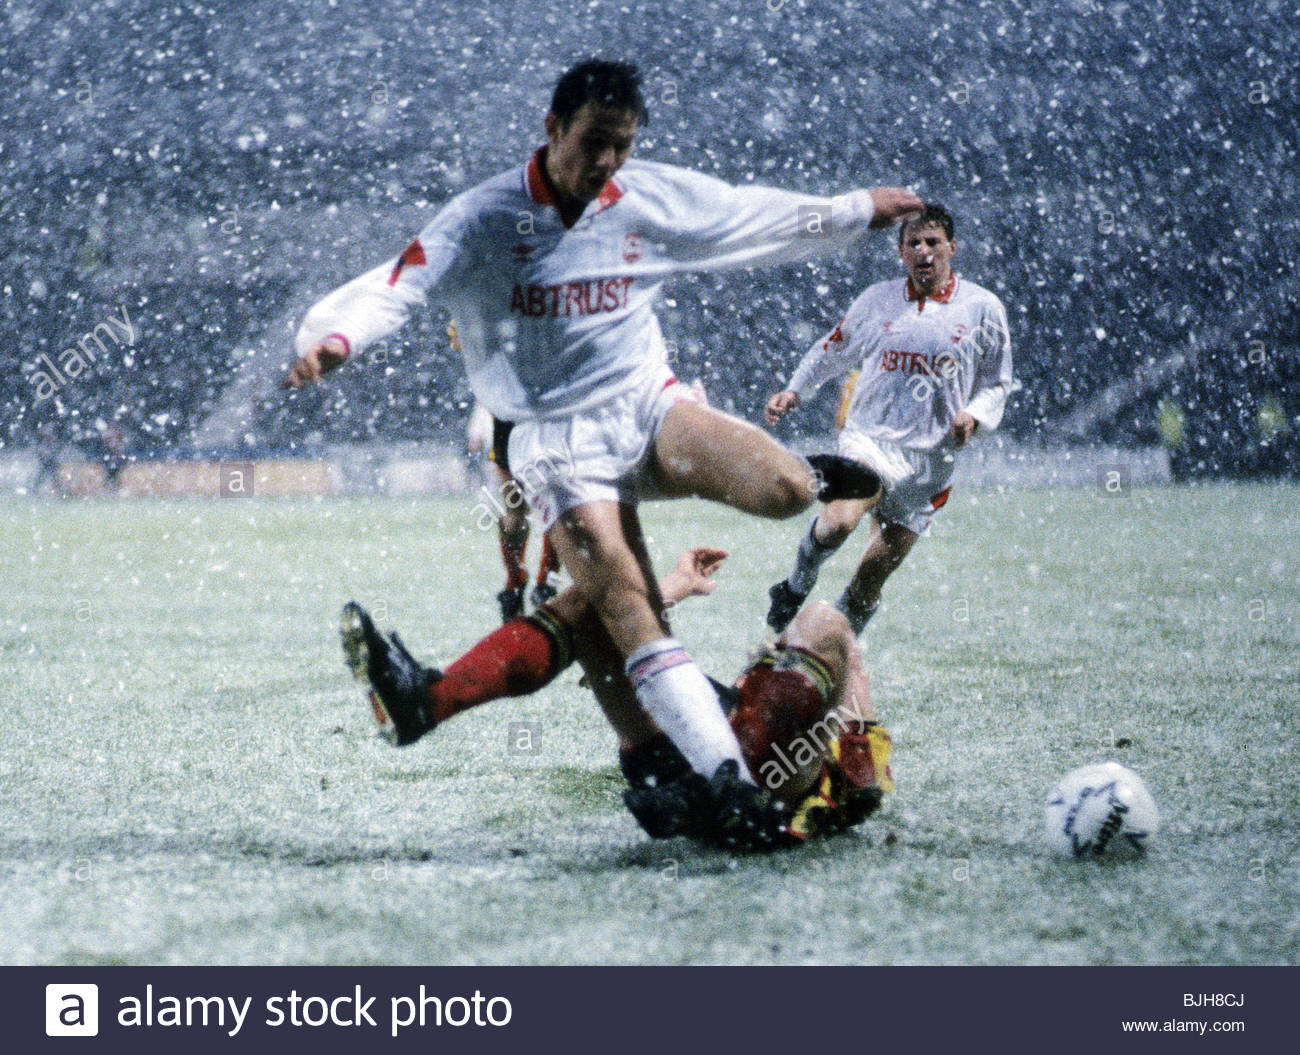 21/11/92 PARTICK THISTLE V ABERDEEN 0-2) FIR HILL - GLASGOW Aberdeen's Eoin Jess (foreground) is tackled by - Stock Image